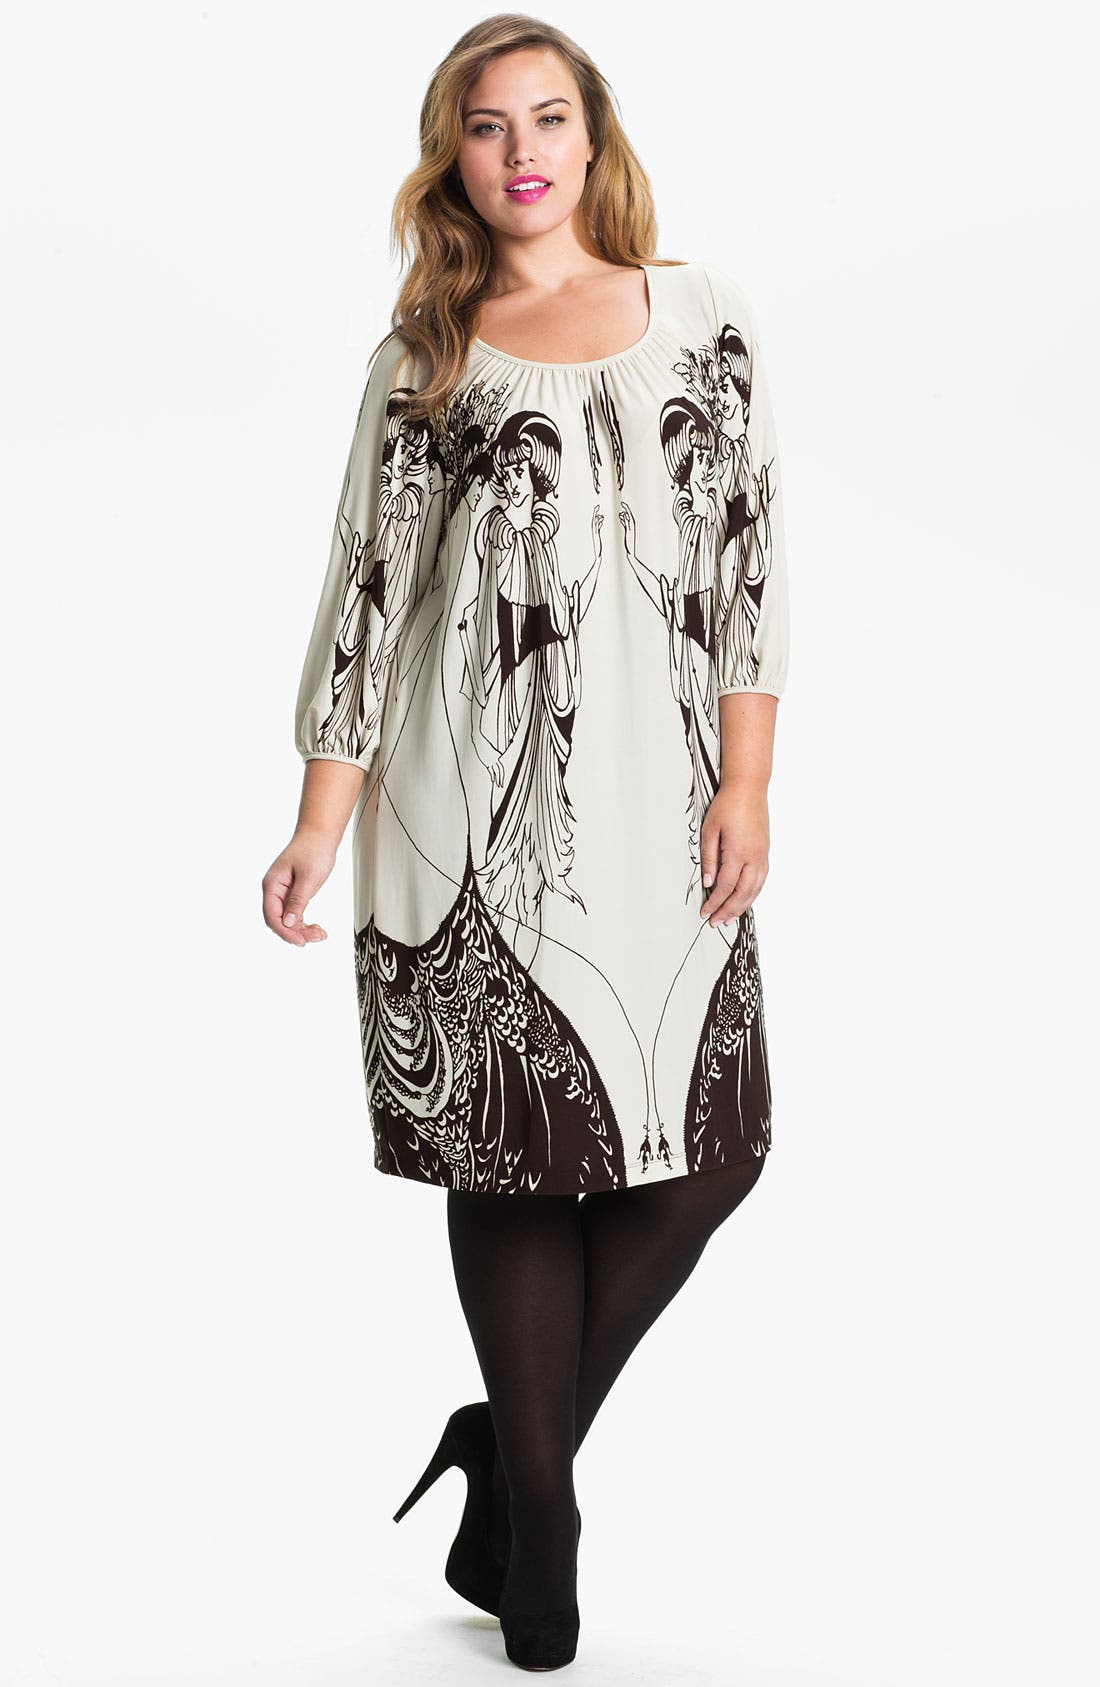 Alternate Image 1 Selected - Evans 'Salome' Placed Print Dress (Plus Size)